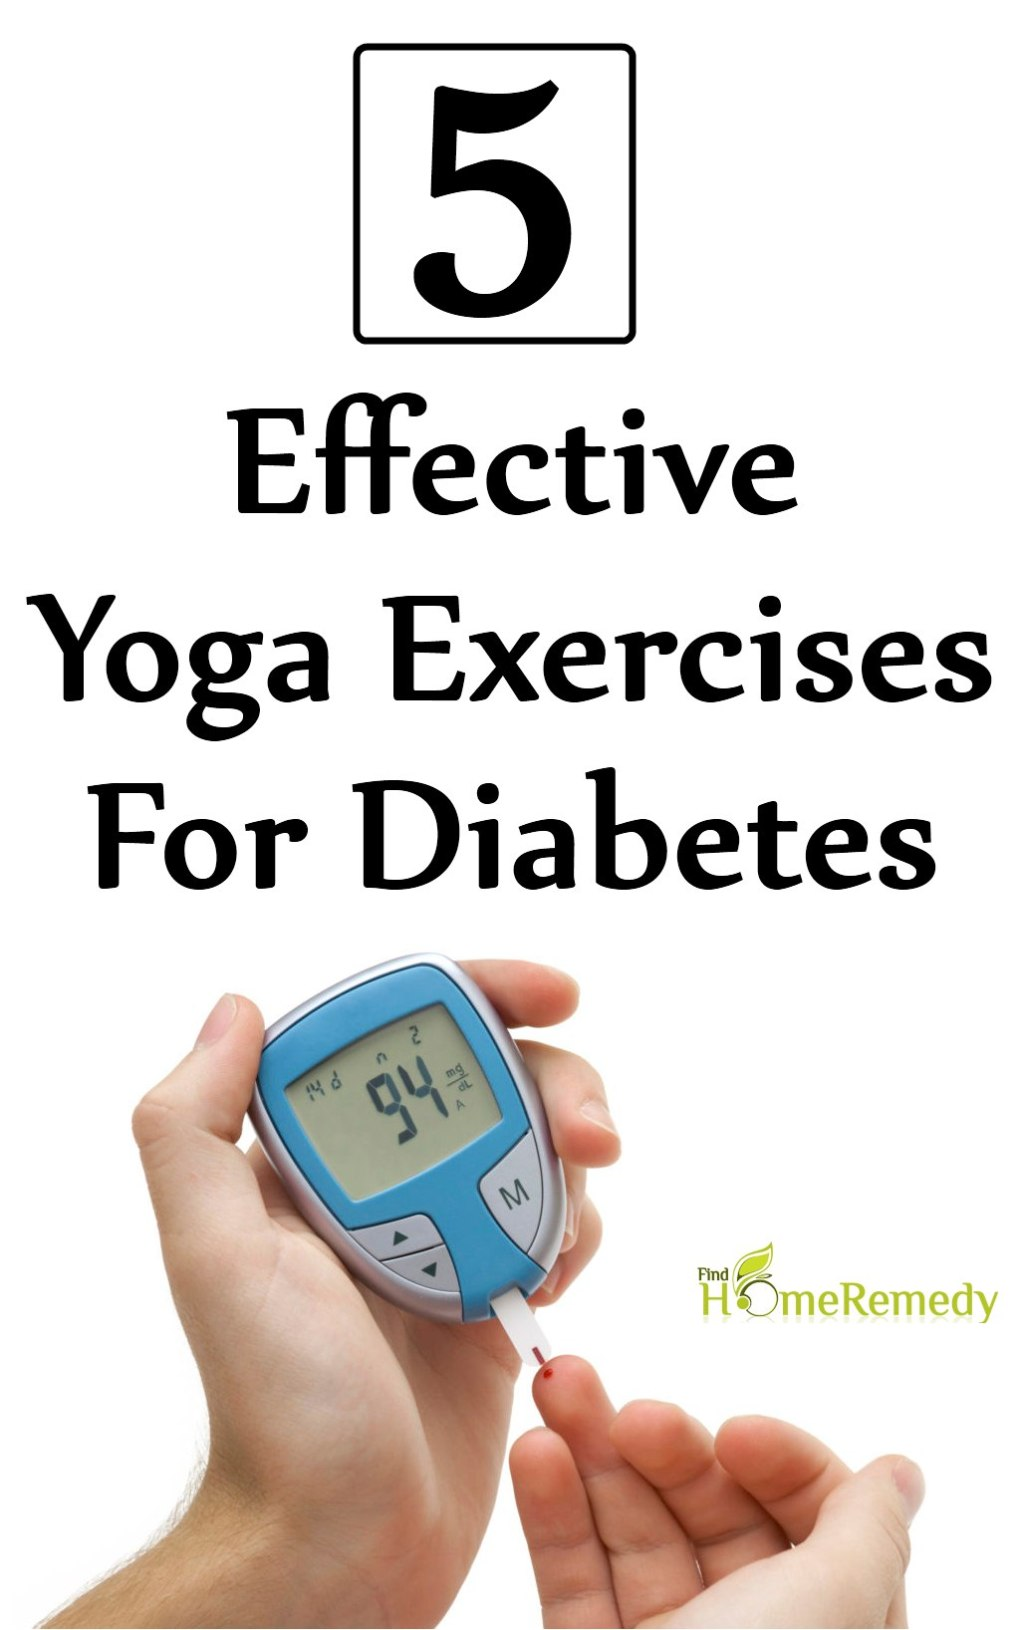 5 Effective Yoga Exercises For Diabetes